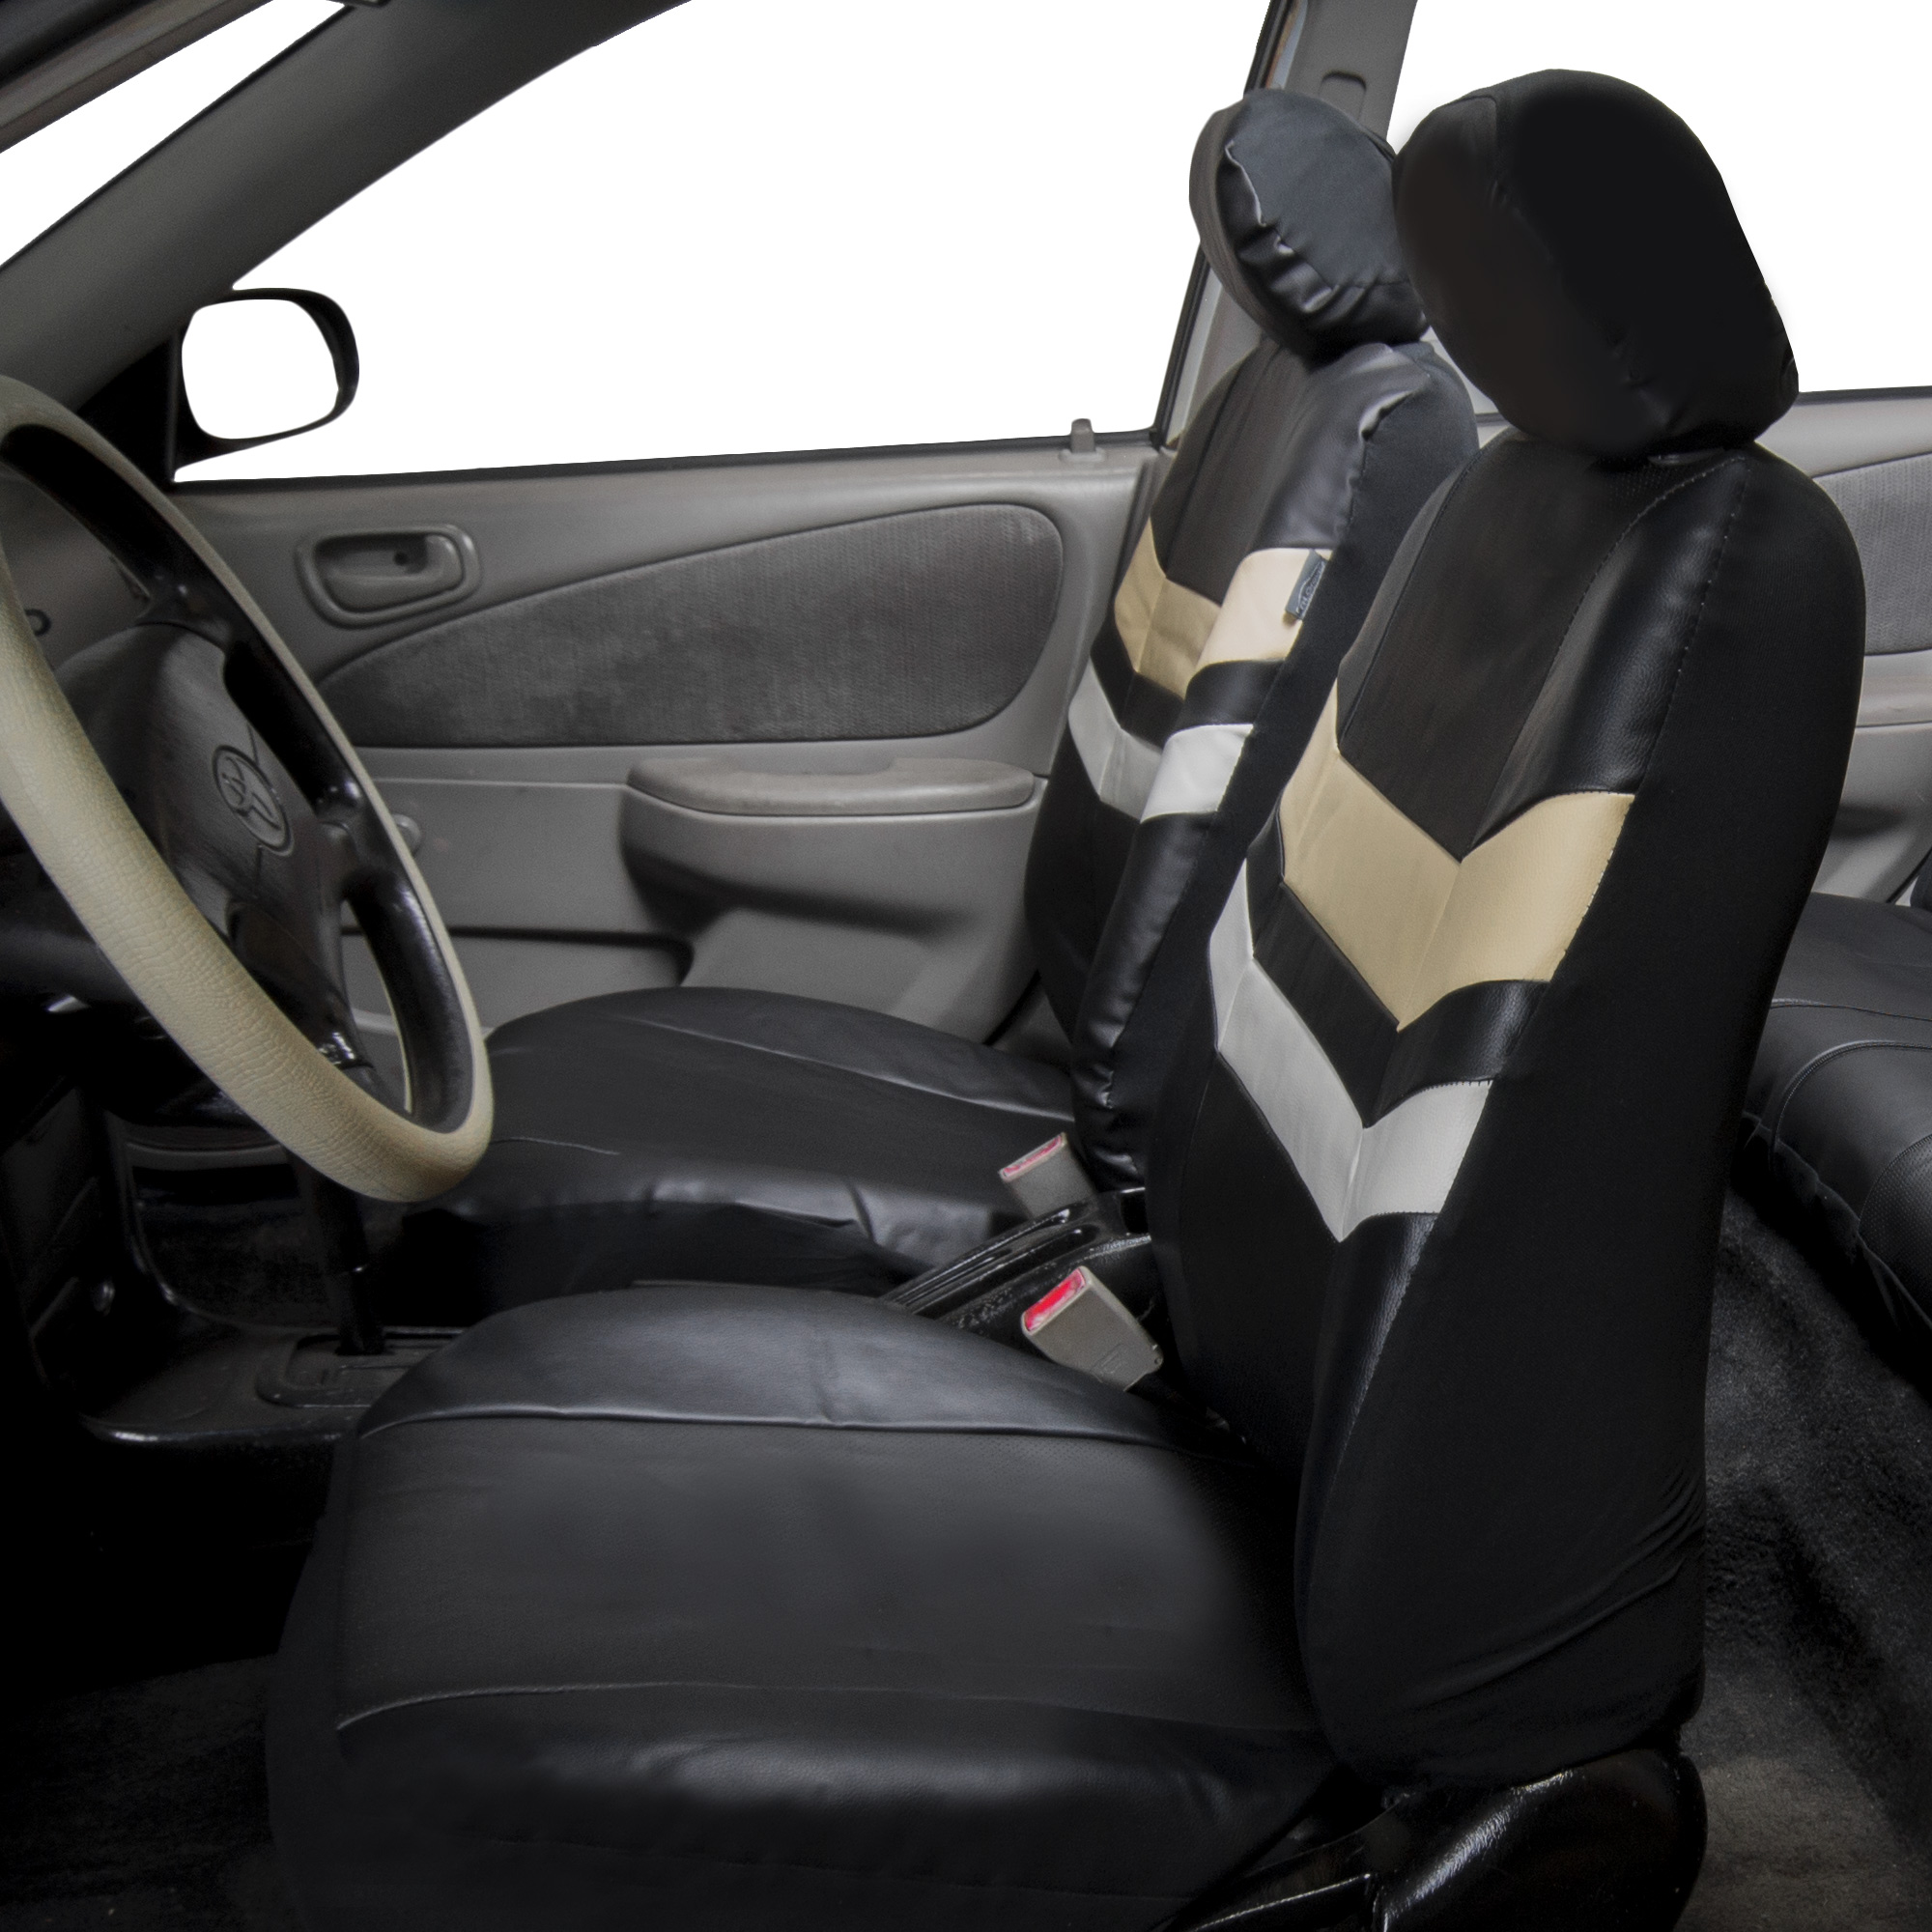 auto seat covers pu leather for car van suv truck top quality 11 colors ebay. Black Bedroom Furniture Sets. Home Design Ideas